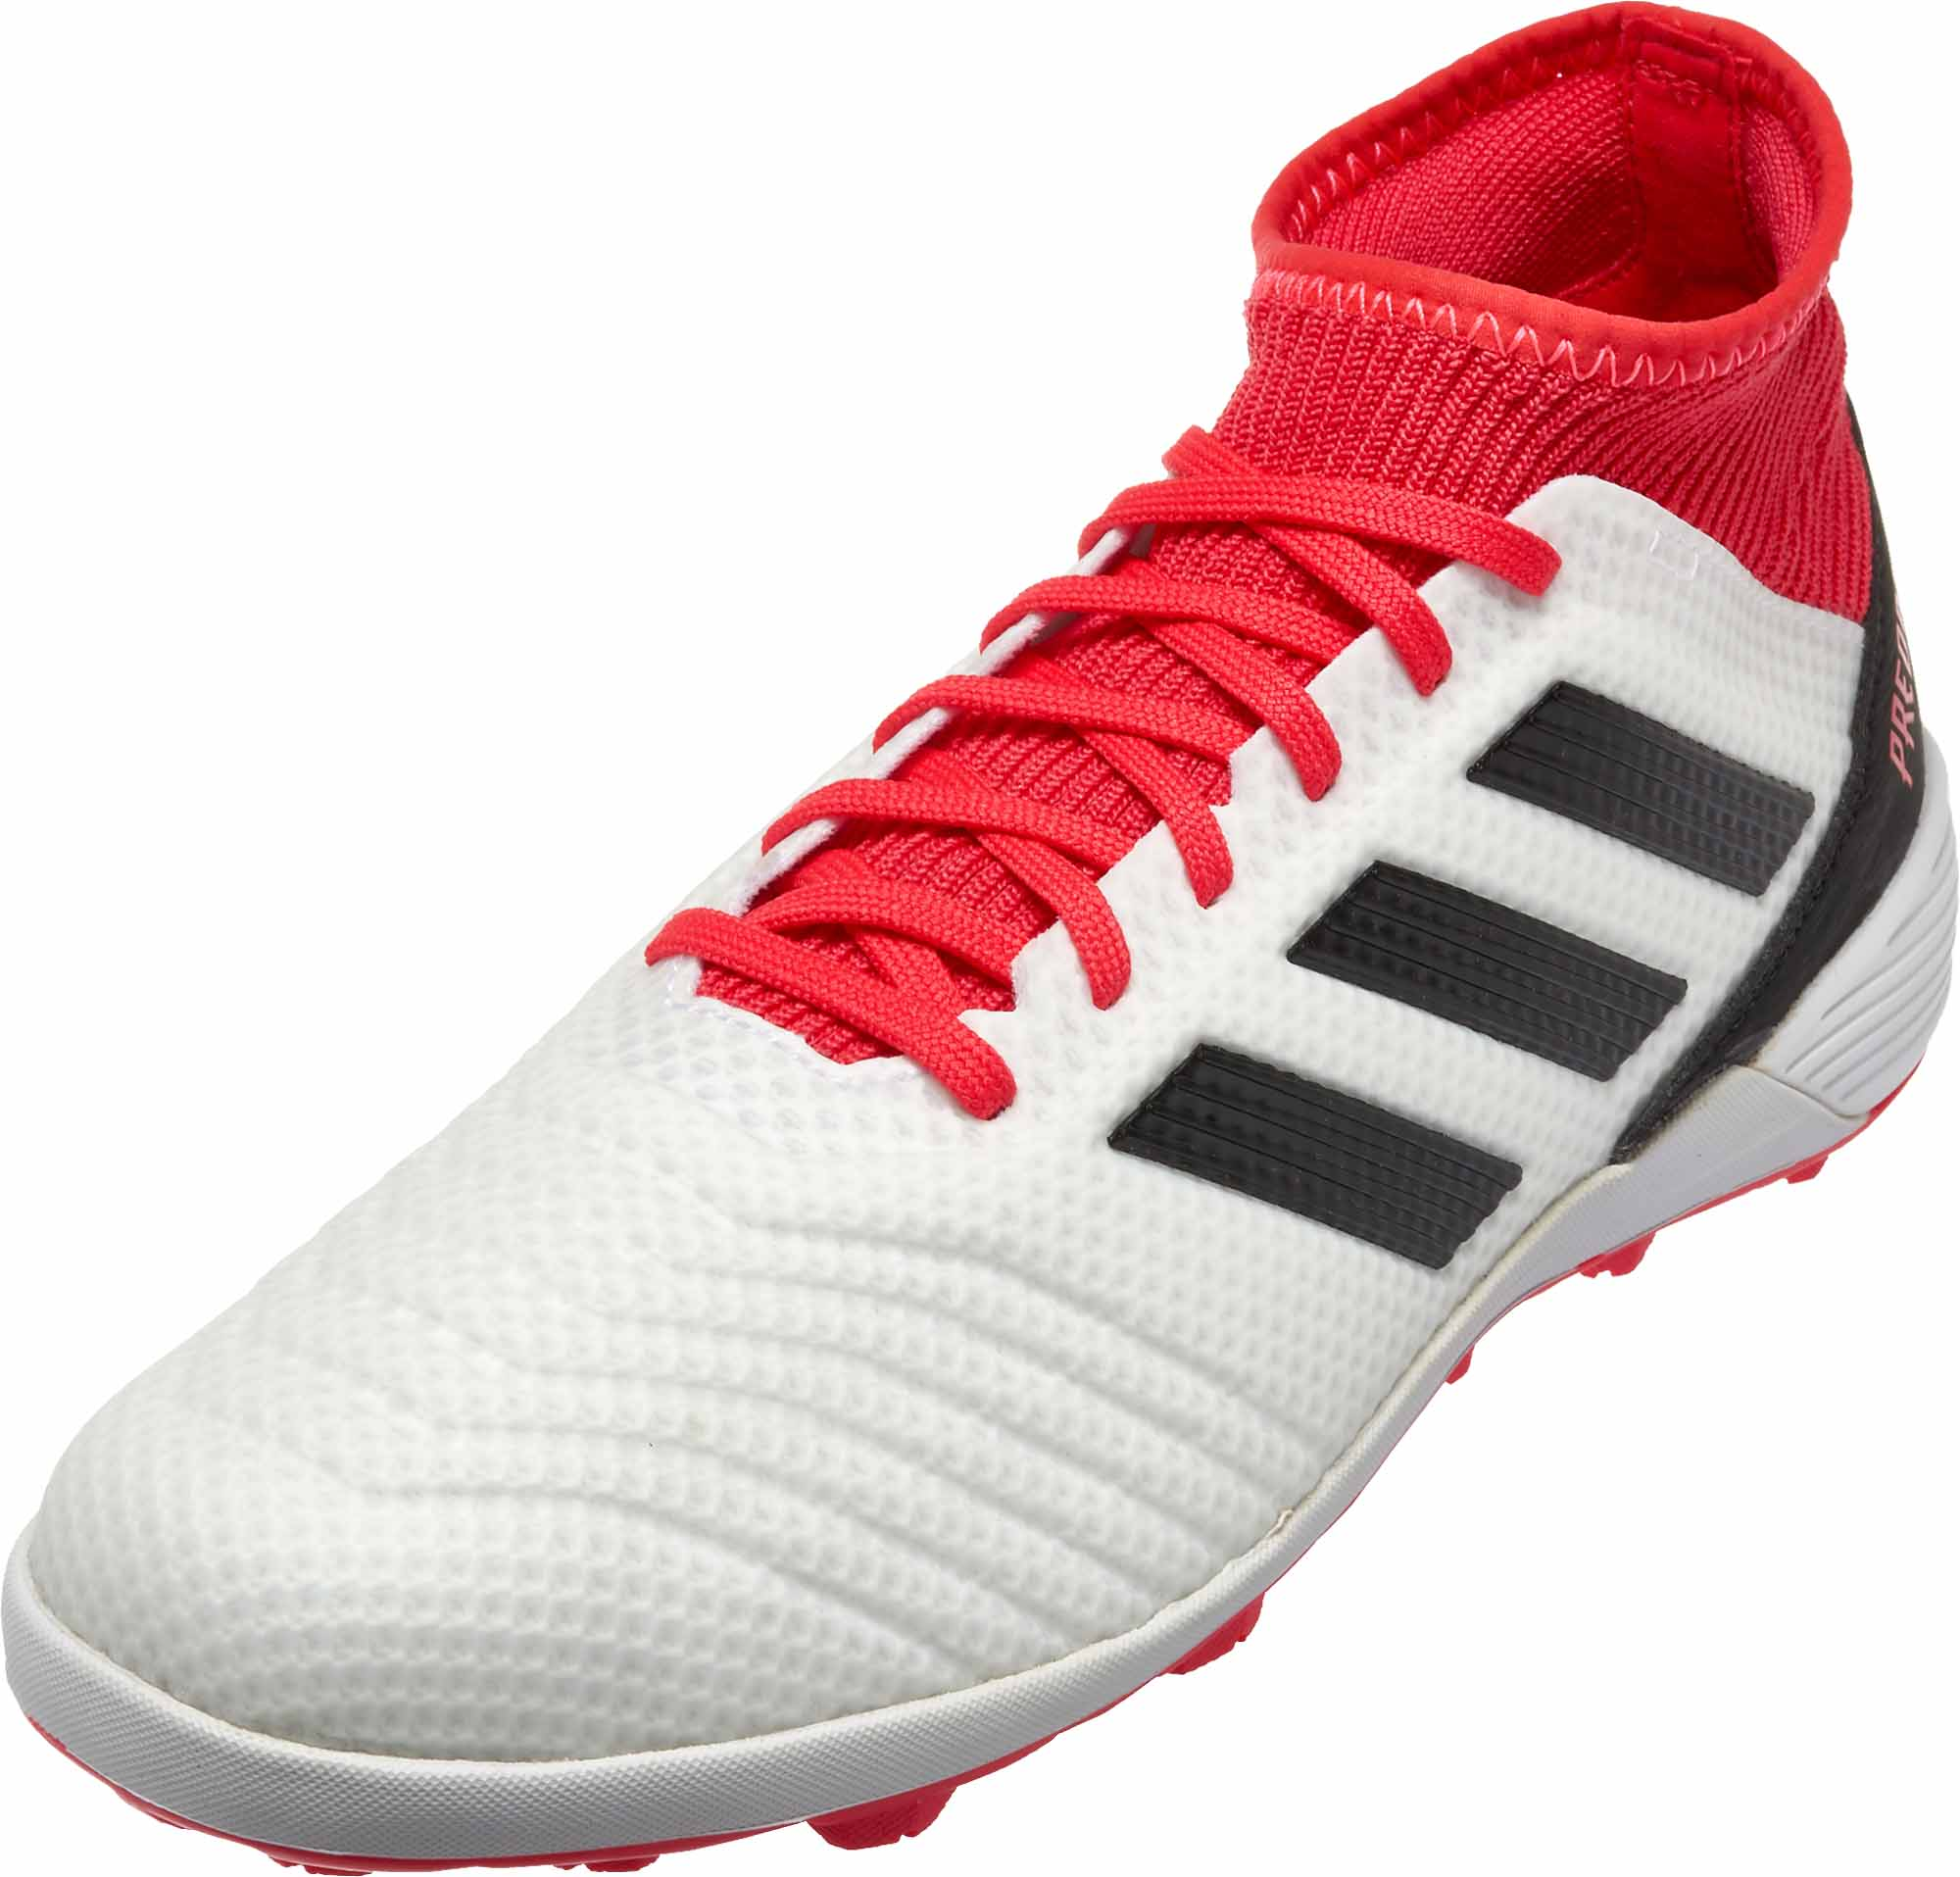 Adidas Indoor Soccer Shoes Tango